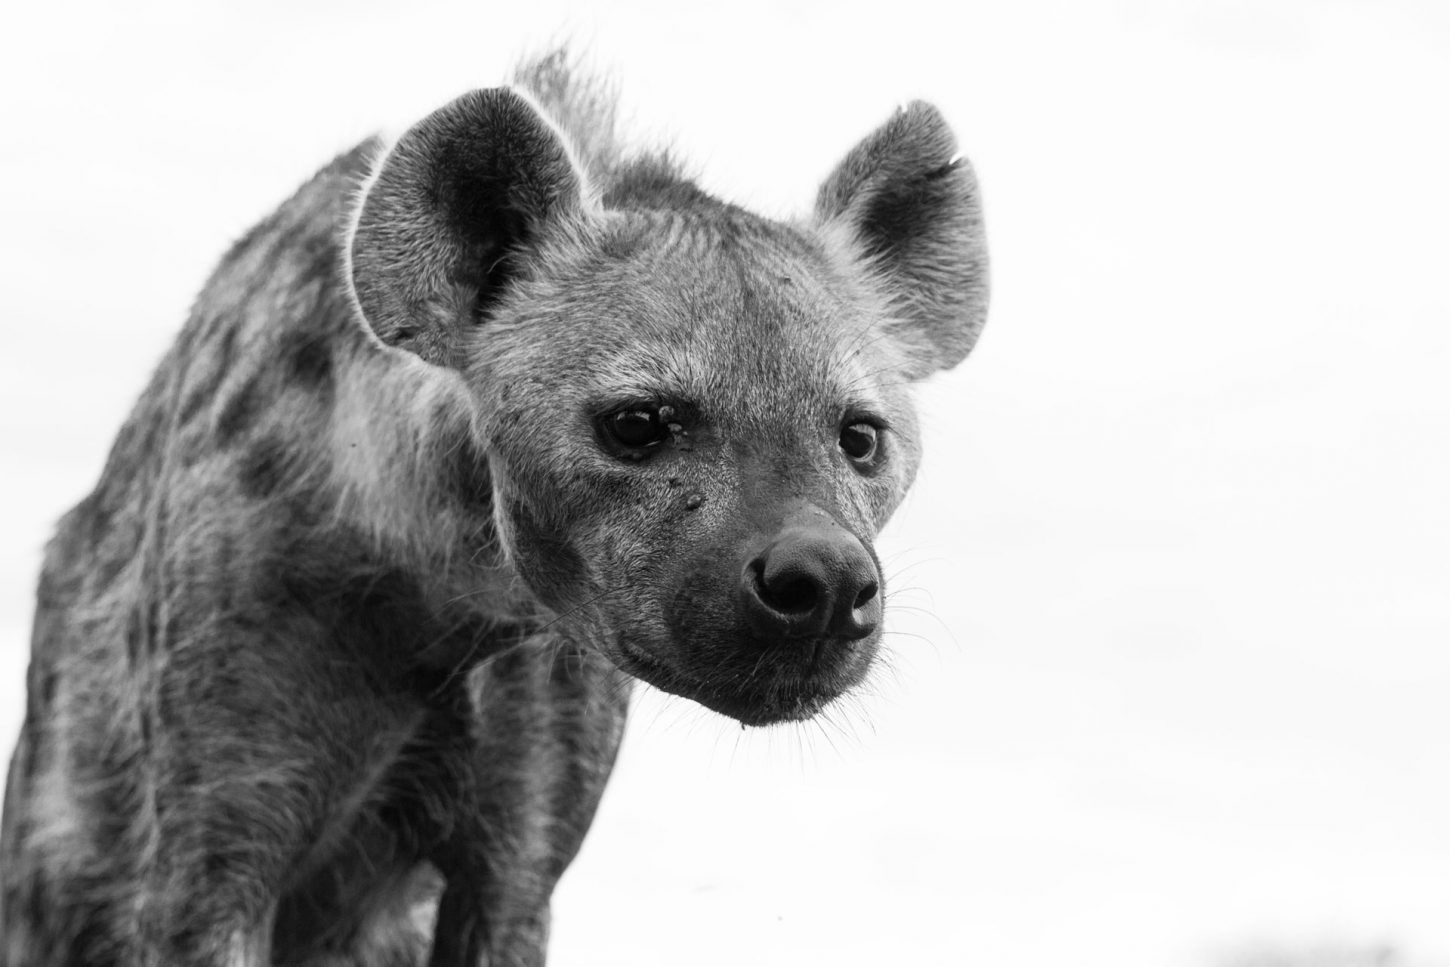 Hyena from low angle looking into camera in black and white